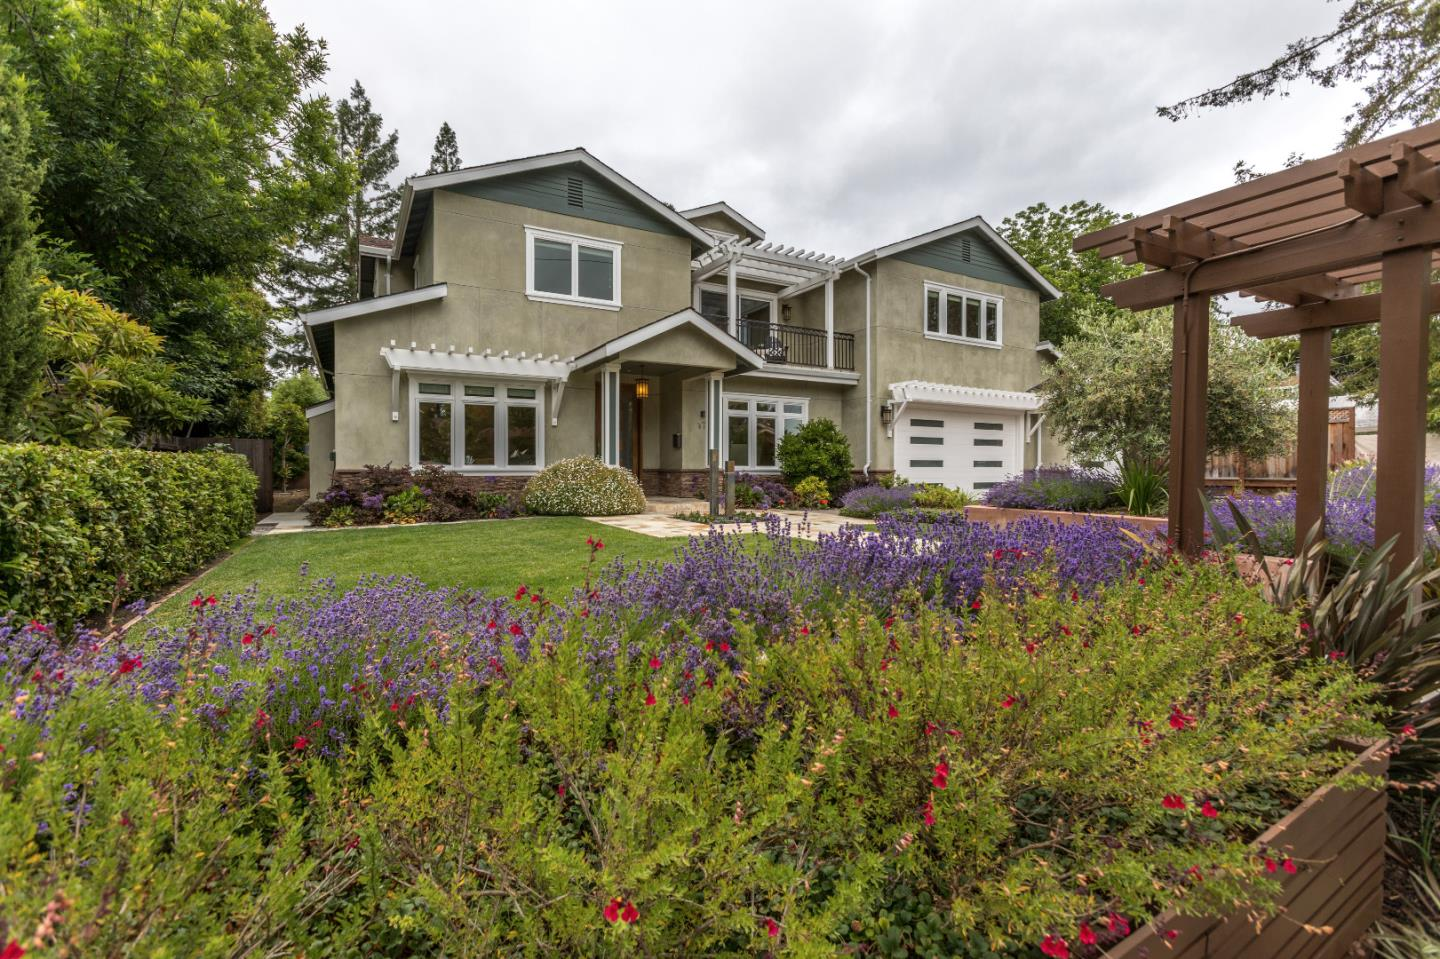 Single Family Home for Sale at 179 Inner Circle Redwood City, California 94062 United States